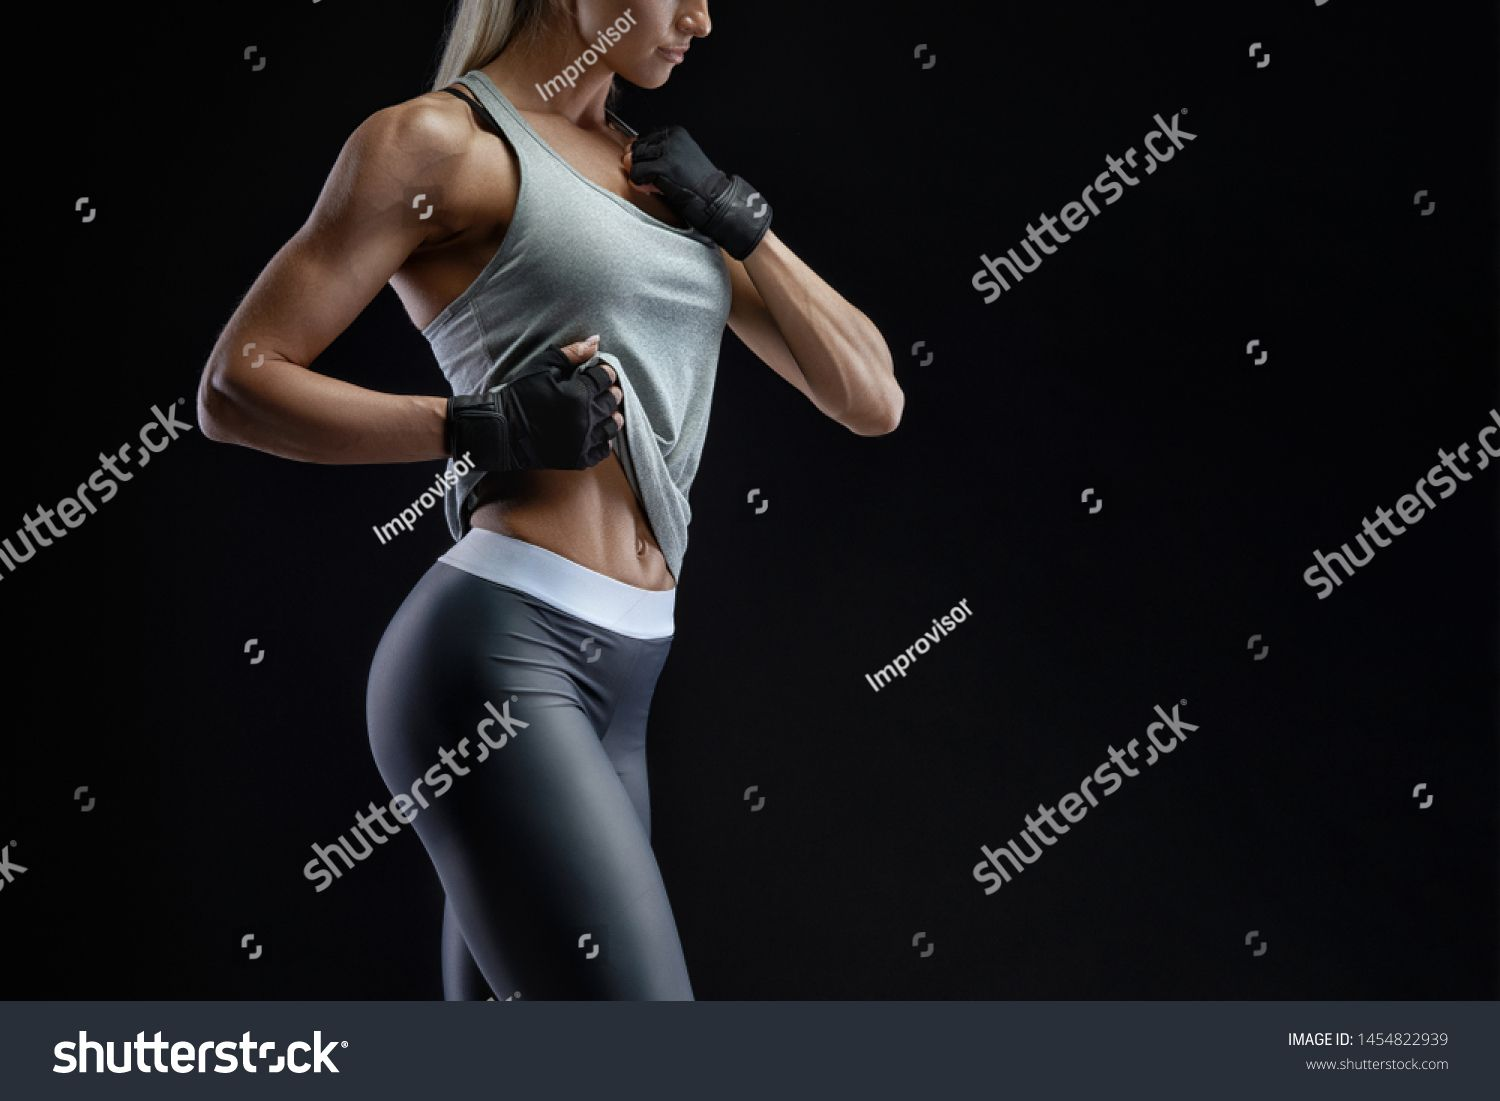 Croped image of sideview beautiful fit girl. Energy fitness motivation, workout, sport, lifestyle co...